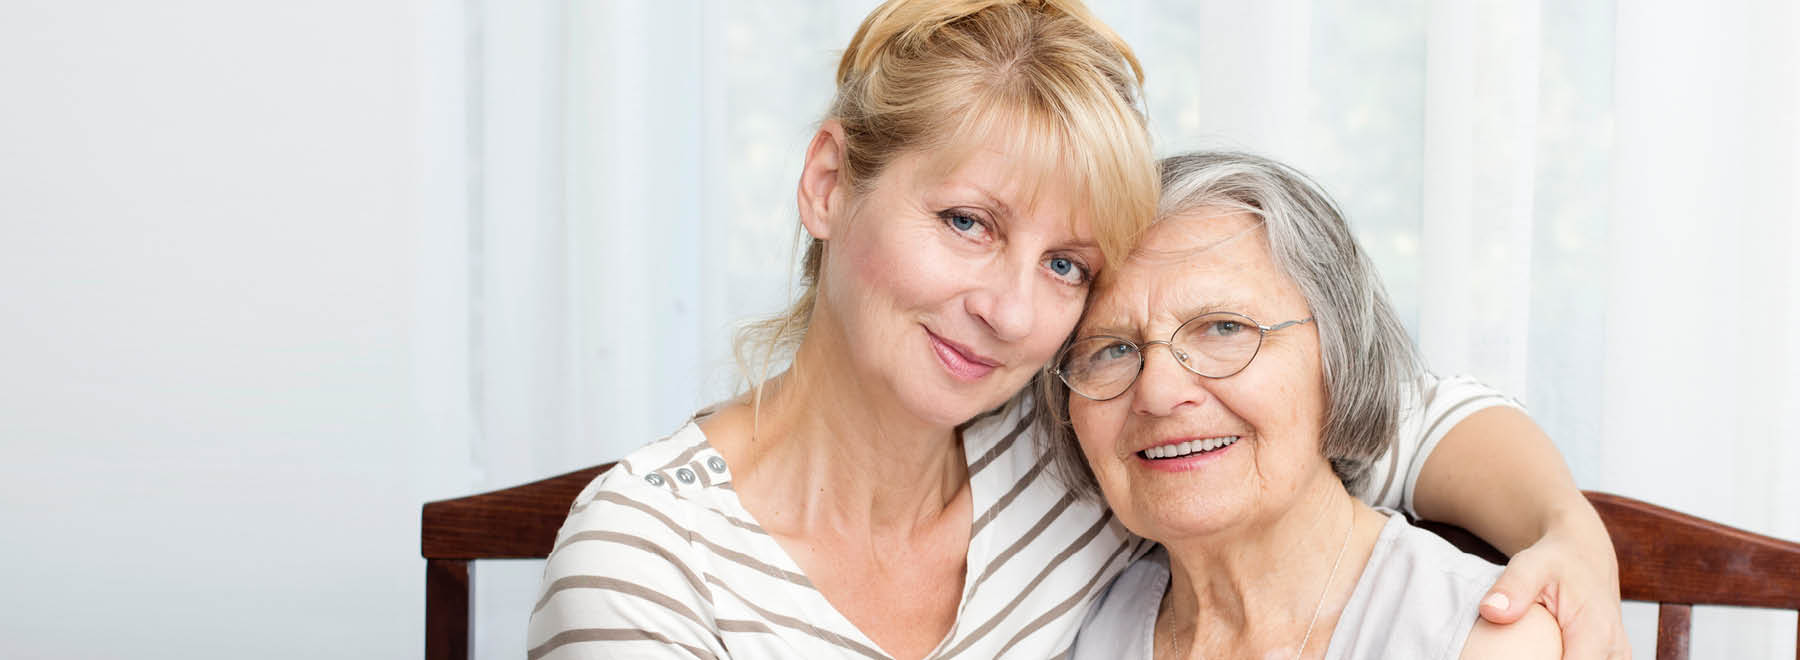 Patient and family caregiver